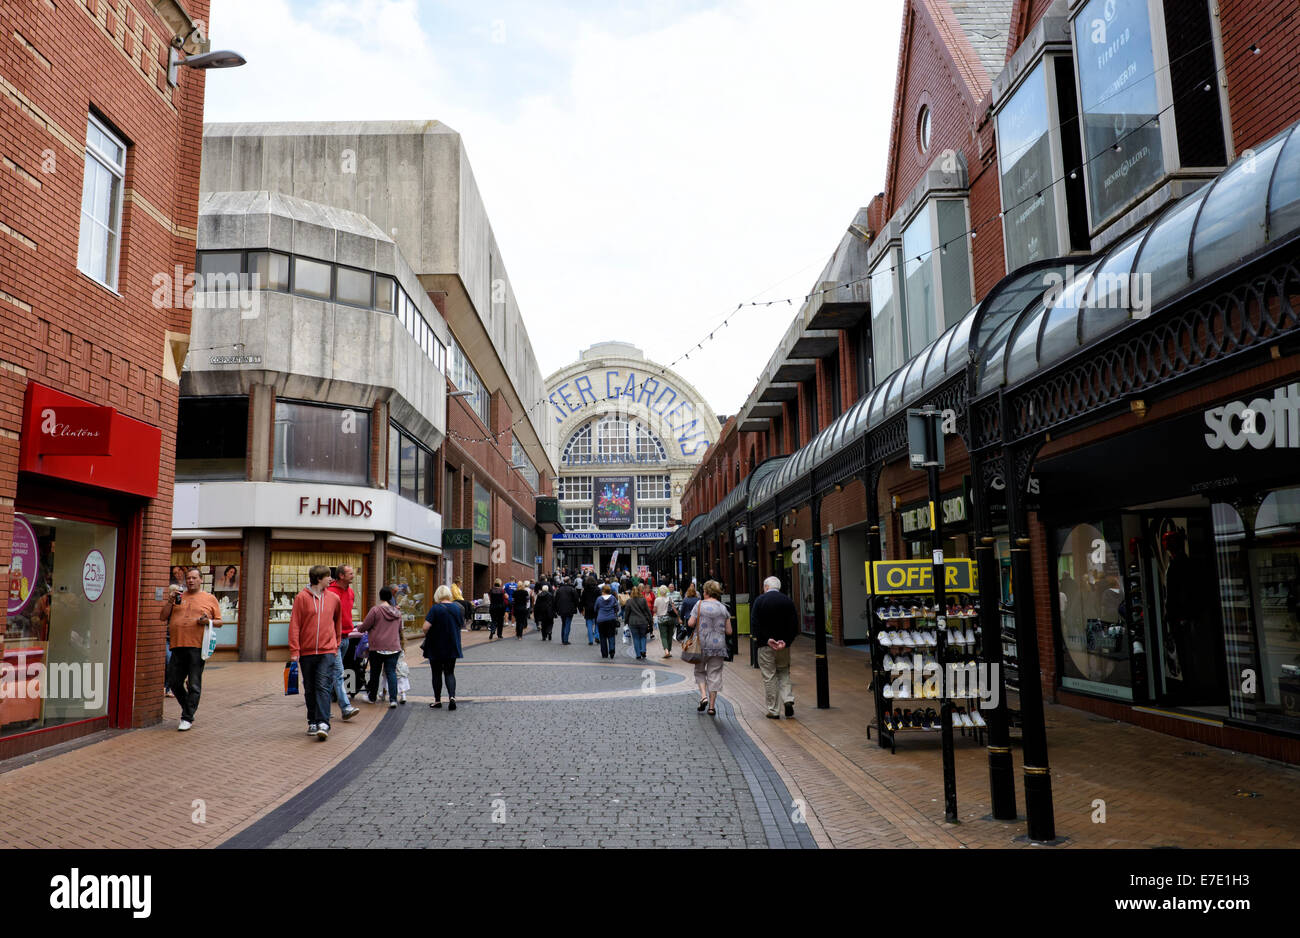 Pedestrian precinct in Blackpool, leading up to the Winter Gardens - Stock Image